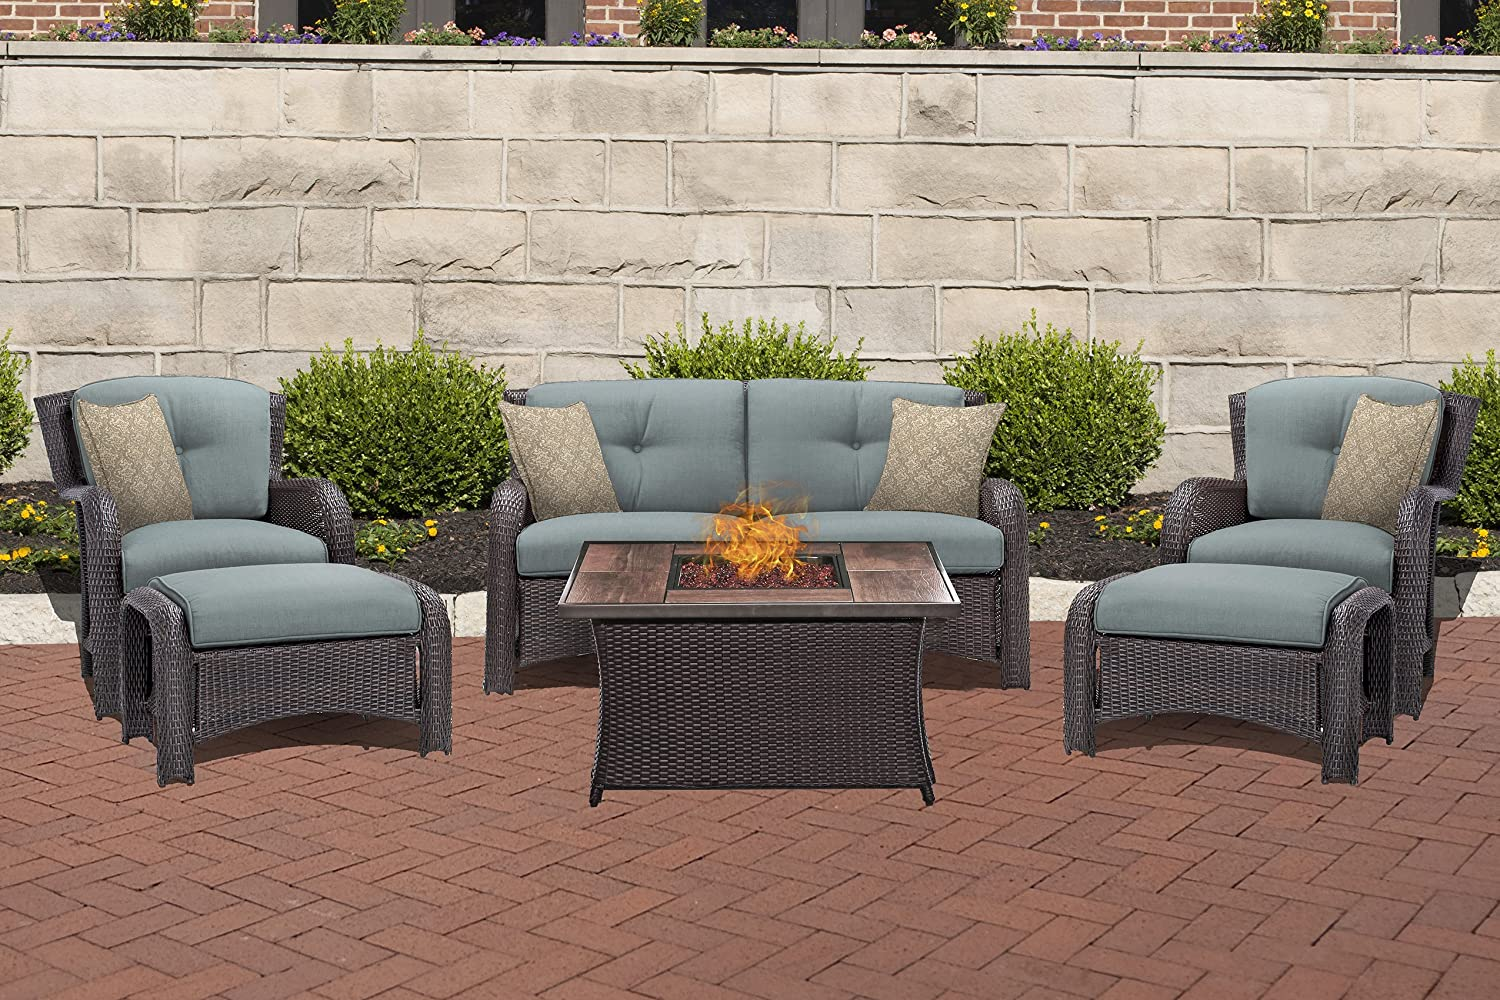 Hanover STRATH6PCFP-BLU-WG Ocean Blue Table Outdoor Patio 6 Piece Strathmere Lounge Set with Fire Pit, Wood Grain Top